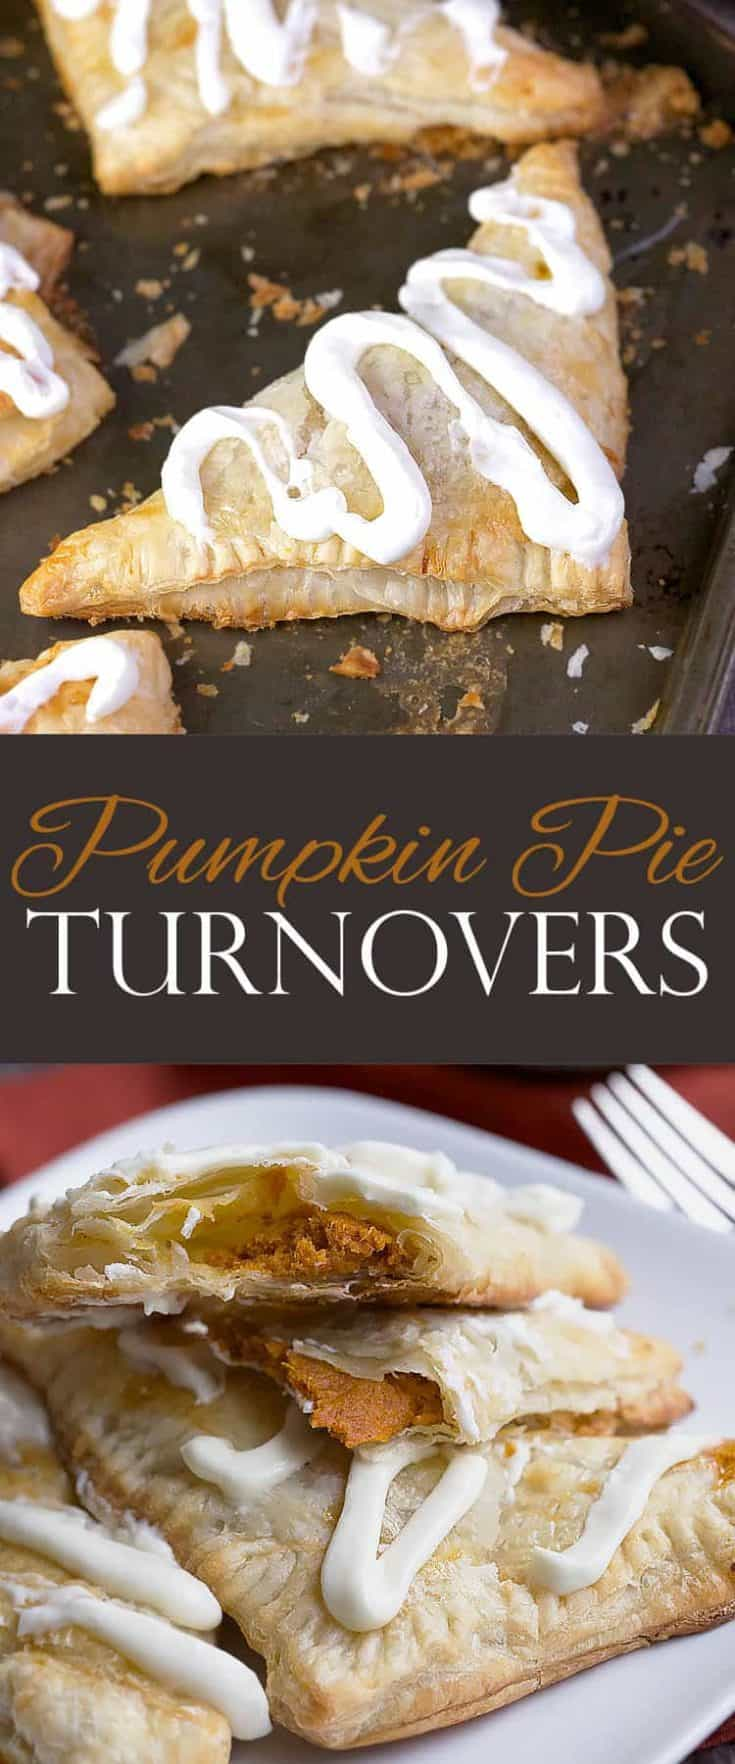 Pumpkin Pie Turnovers with cream cheese frosting is a simple classic dessert recipe which takes few ingredients and little time. #pumpkinpie #pumpkinrecipes #pumpkindessert